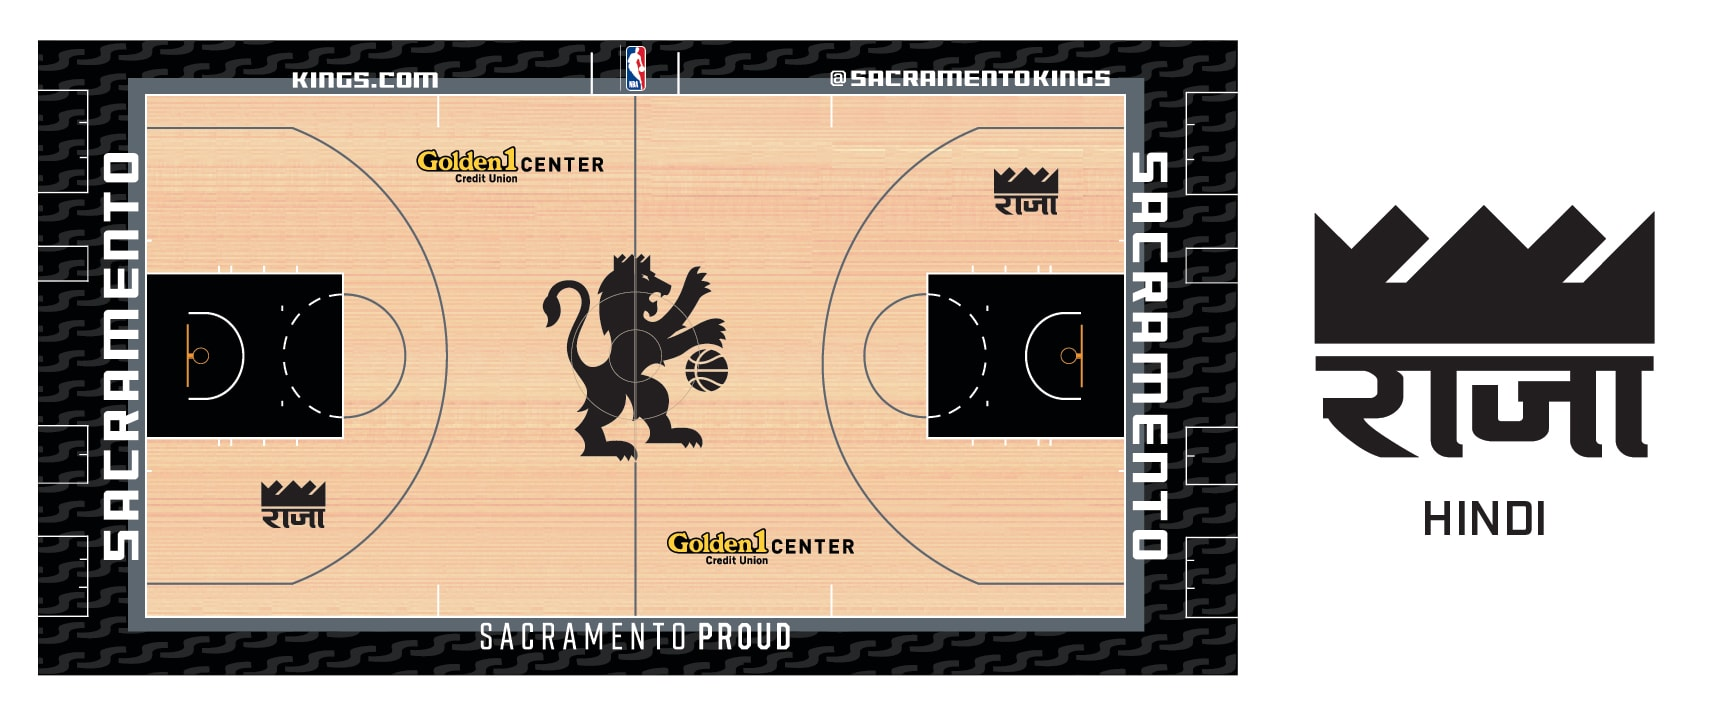 Sacramento kings debut new alternative court colorway with for the teams biggest global celebrations bollywood and lunar new year theme nights interchangeable panels featuring a new regional logo a kings crown biocorpaavc Choice Image